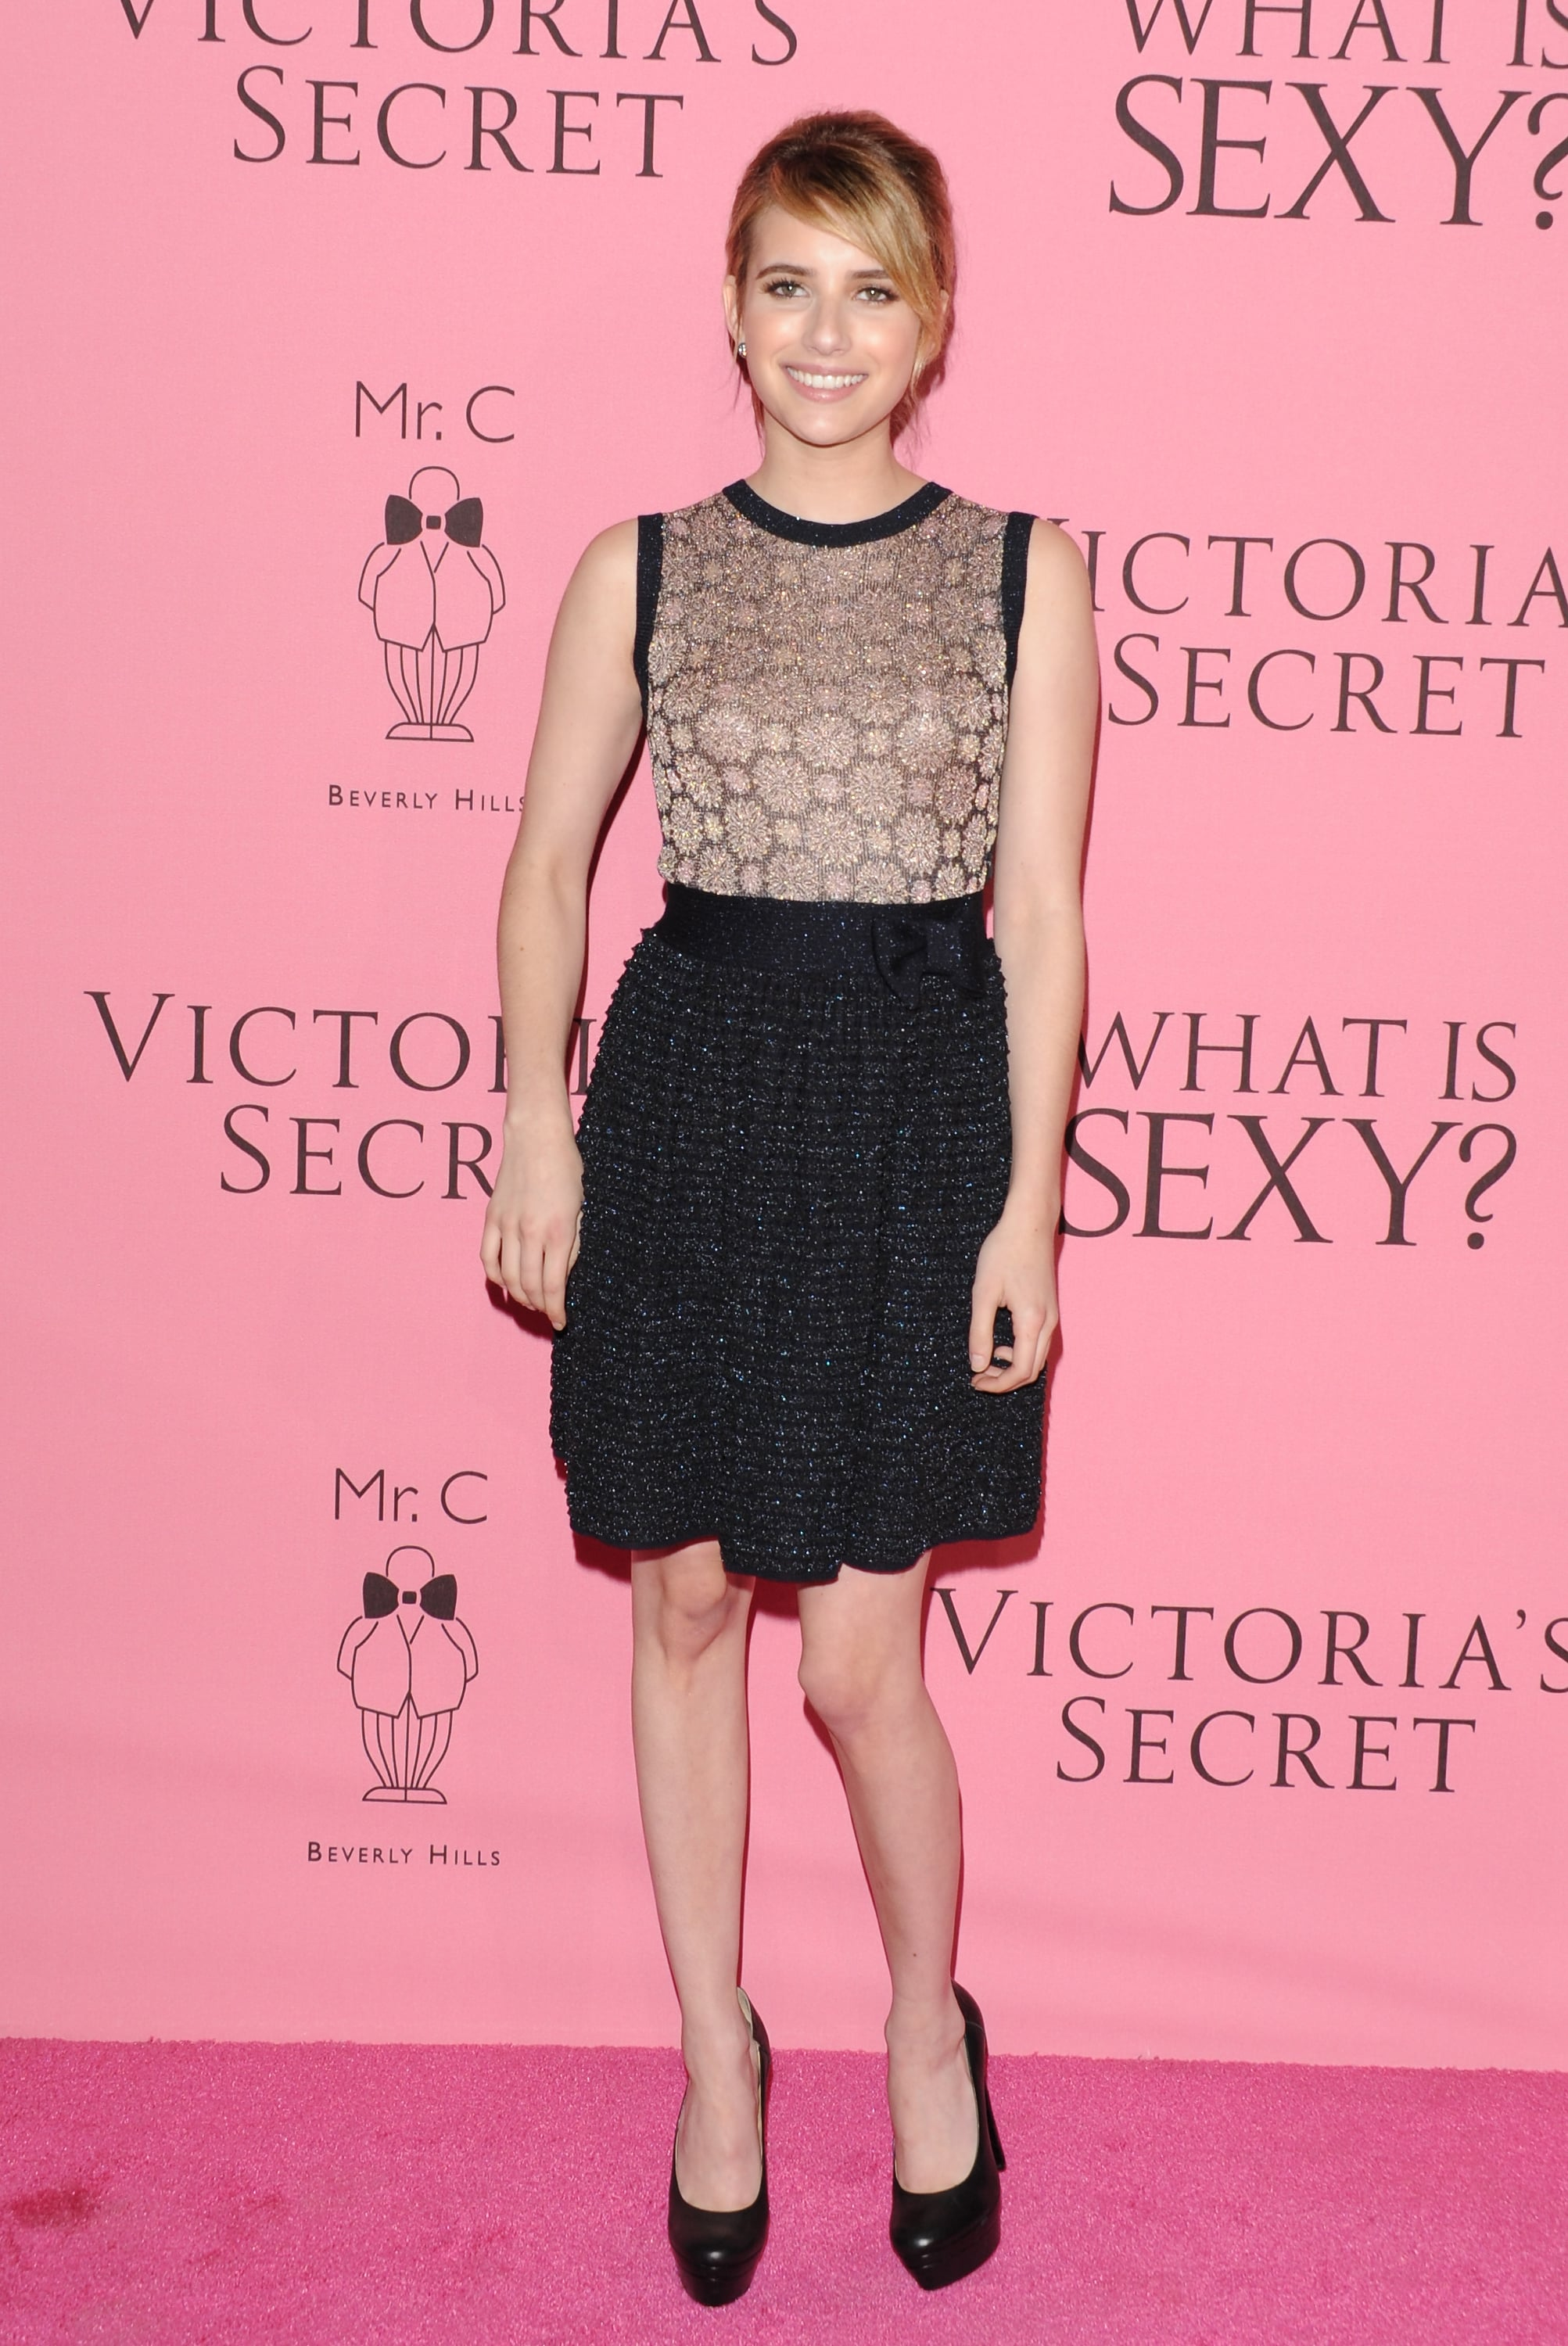 Emma walked the pink carpet at the Victoria's Secret What Is Sexy? party in a flirty cocktail dress in May 2012.